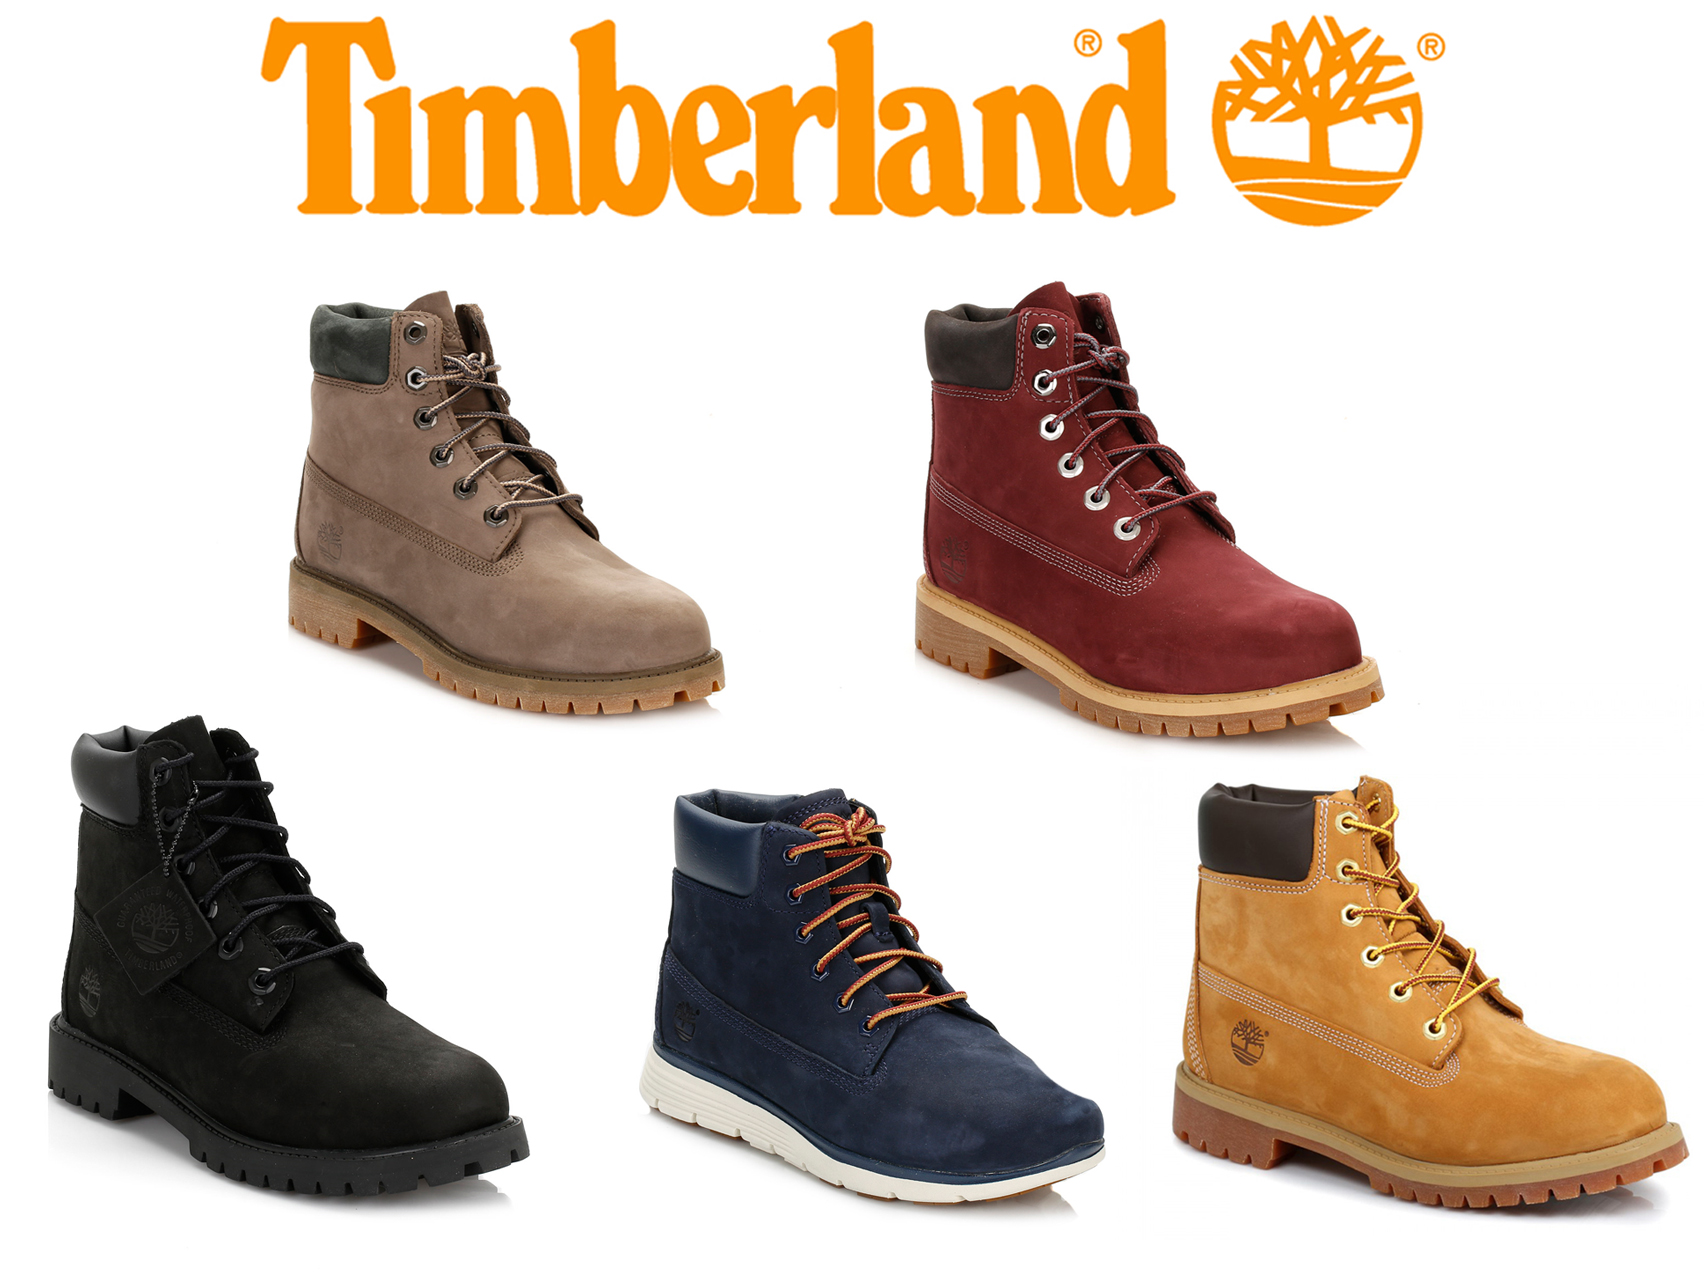 timberland cleaning brush kit for nubuck suede canvas